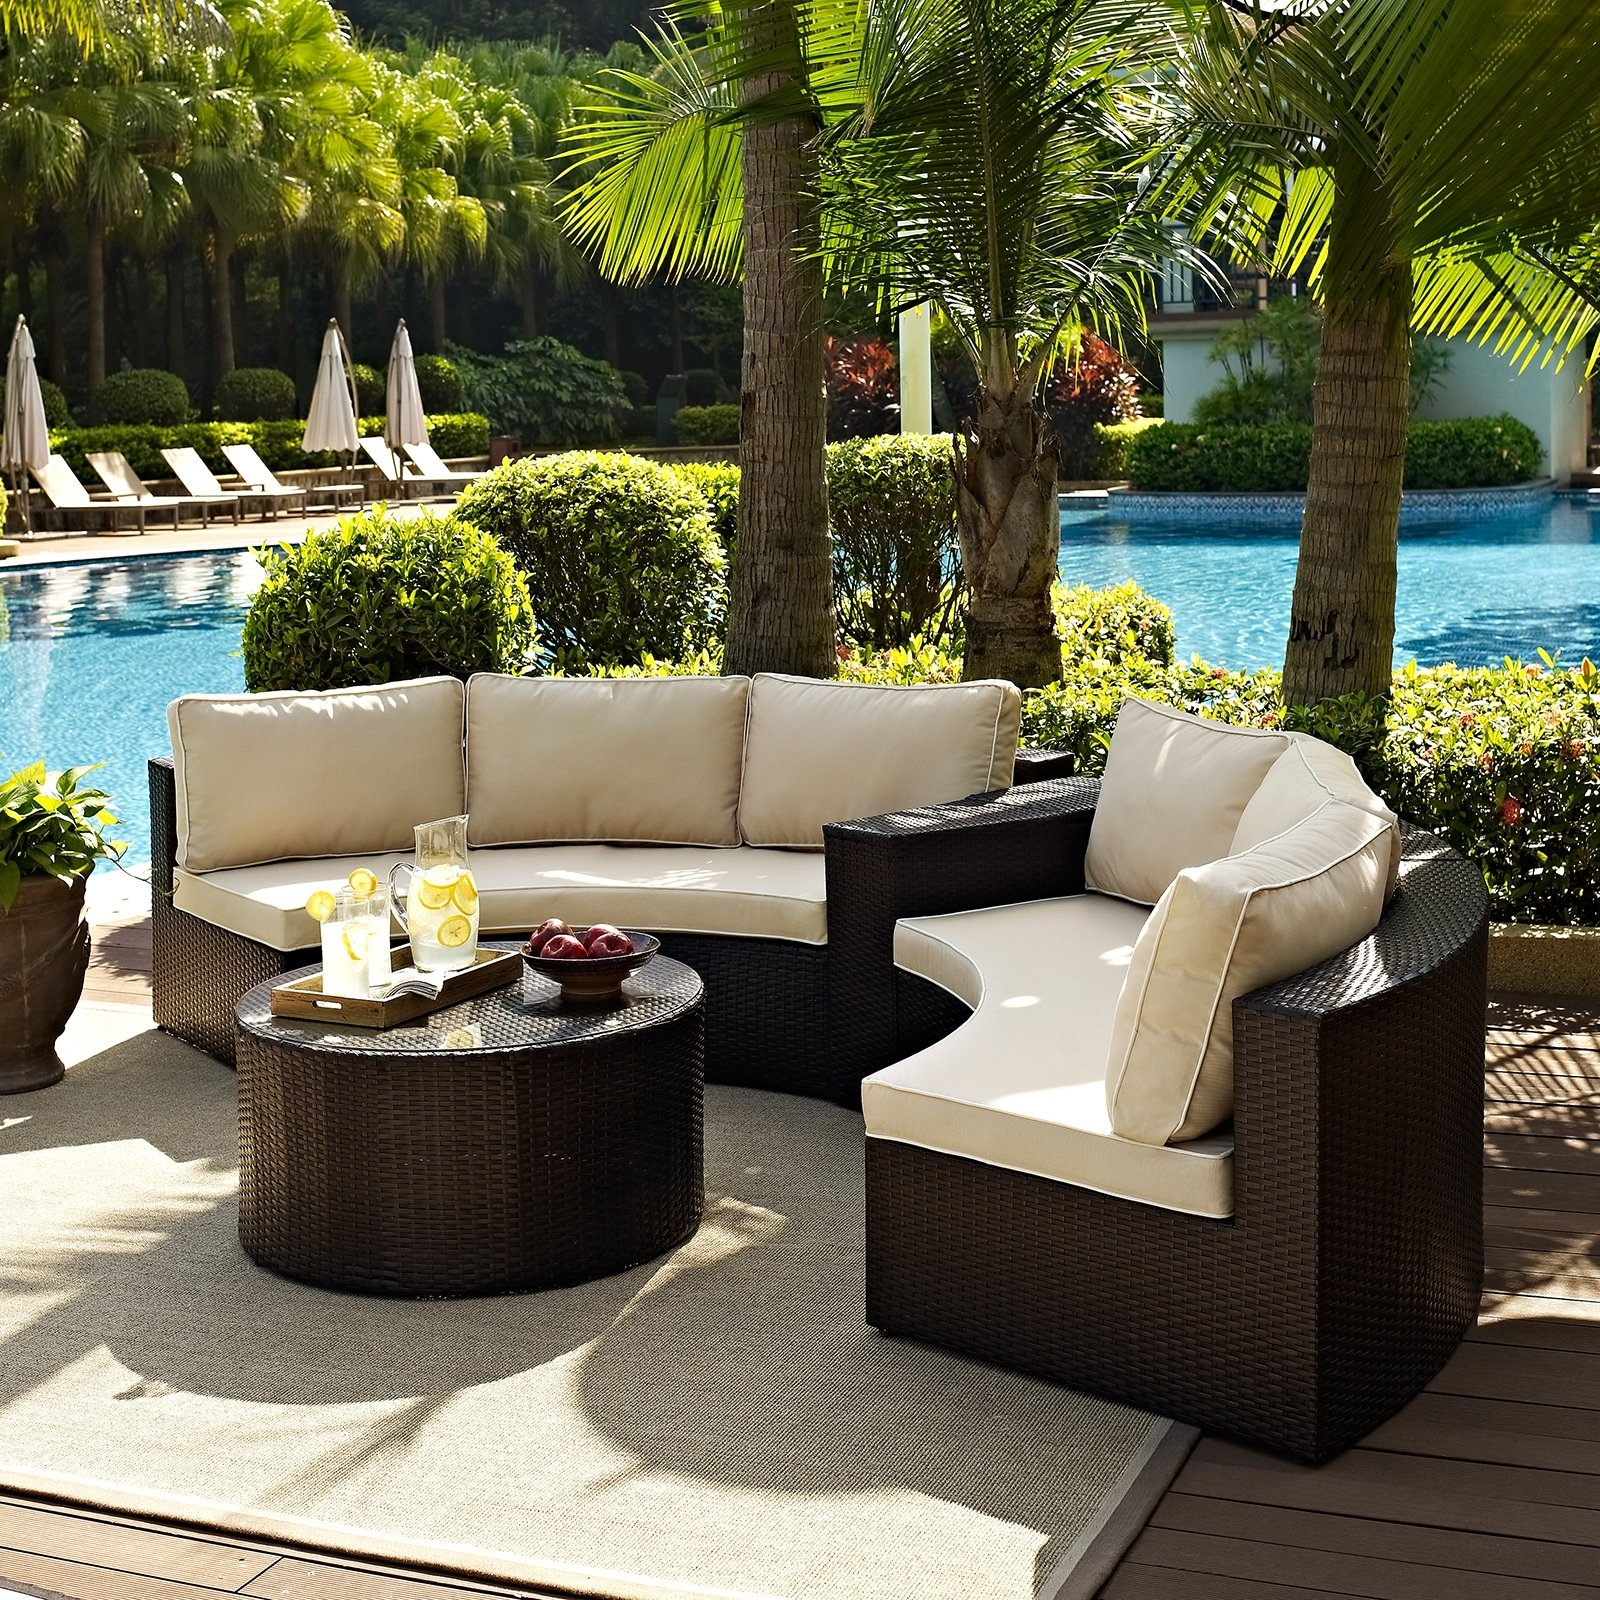 Most Recently Released Big Lots Patio Furniture Cushions Tags : Outdoor Wicker Conversation For Patio Conversation Sets With Sunbrella Cushions (View 11 of 15)